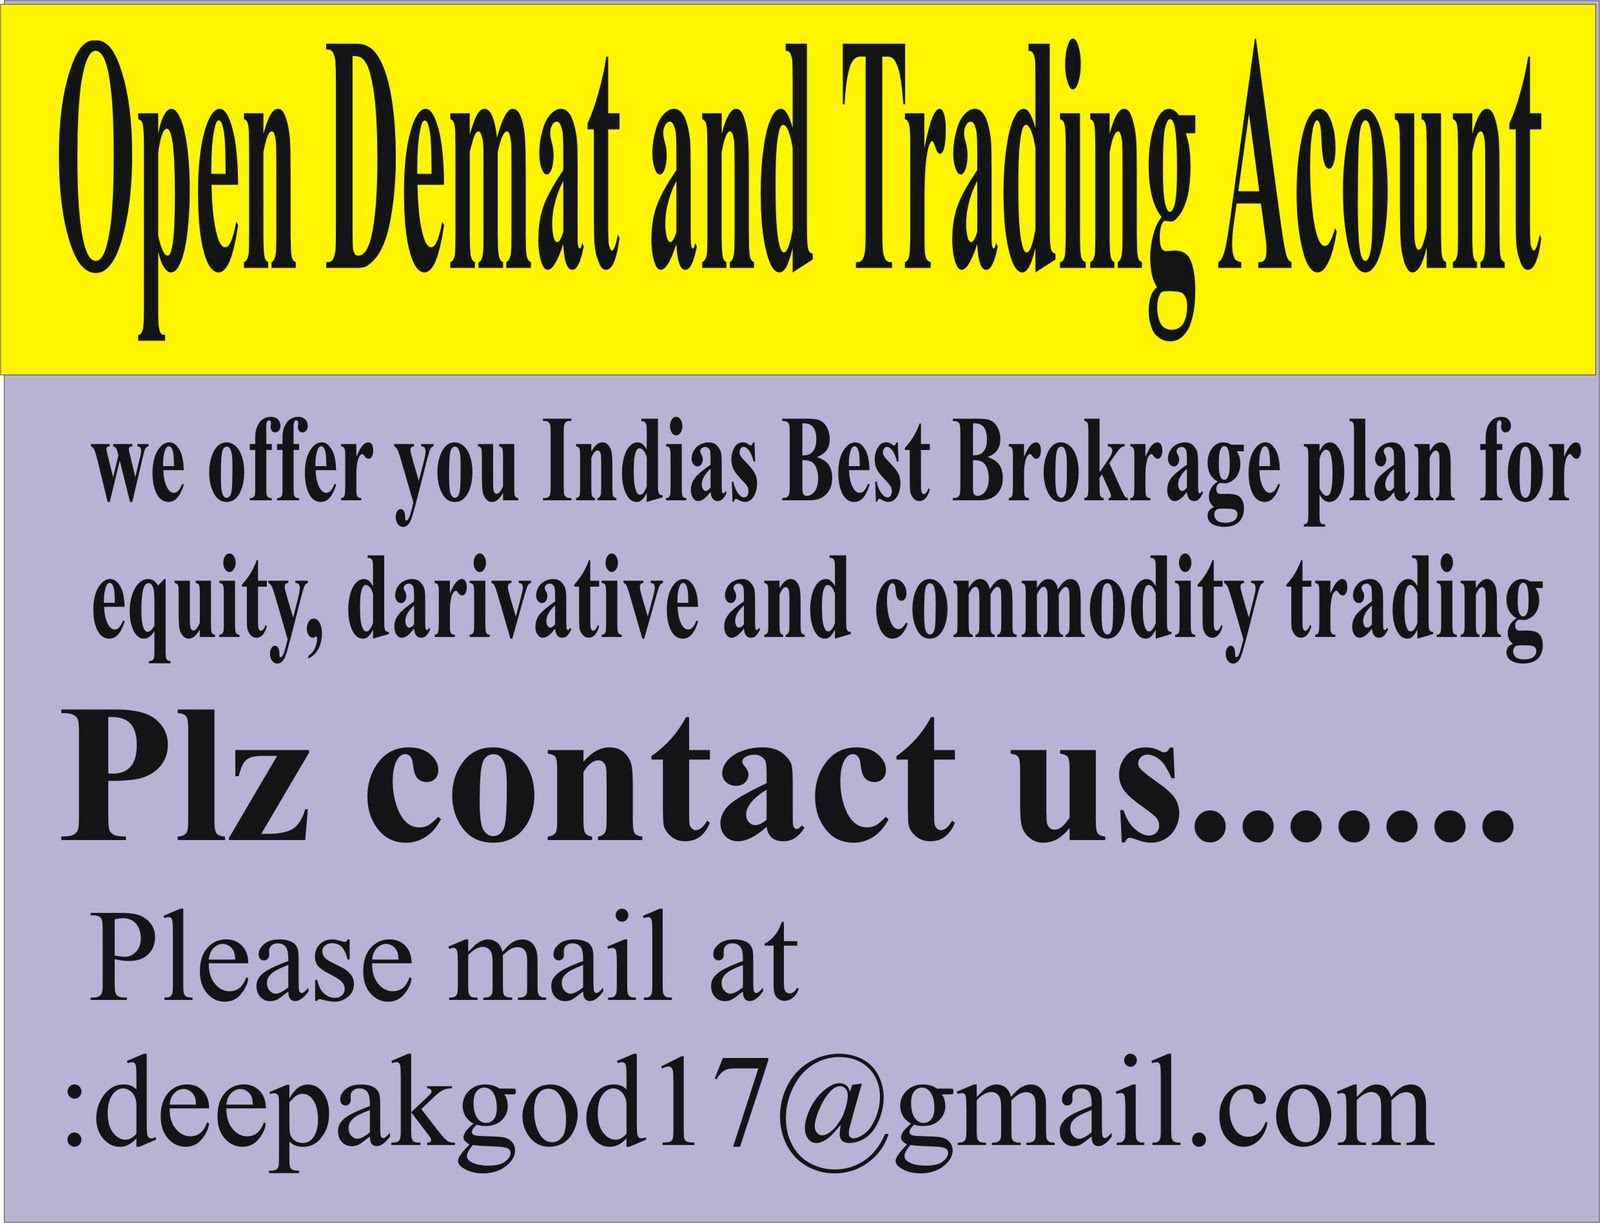 Reliance money online trading brokerage charges